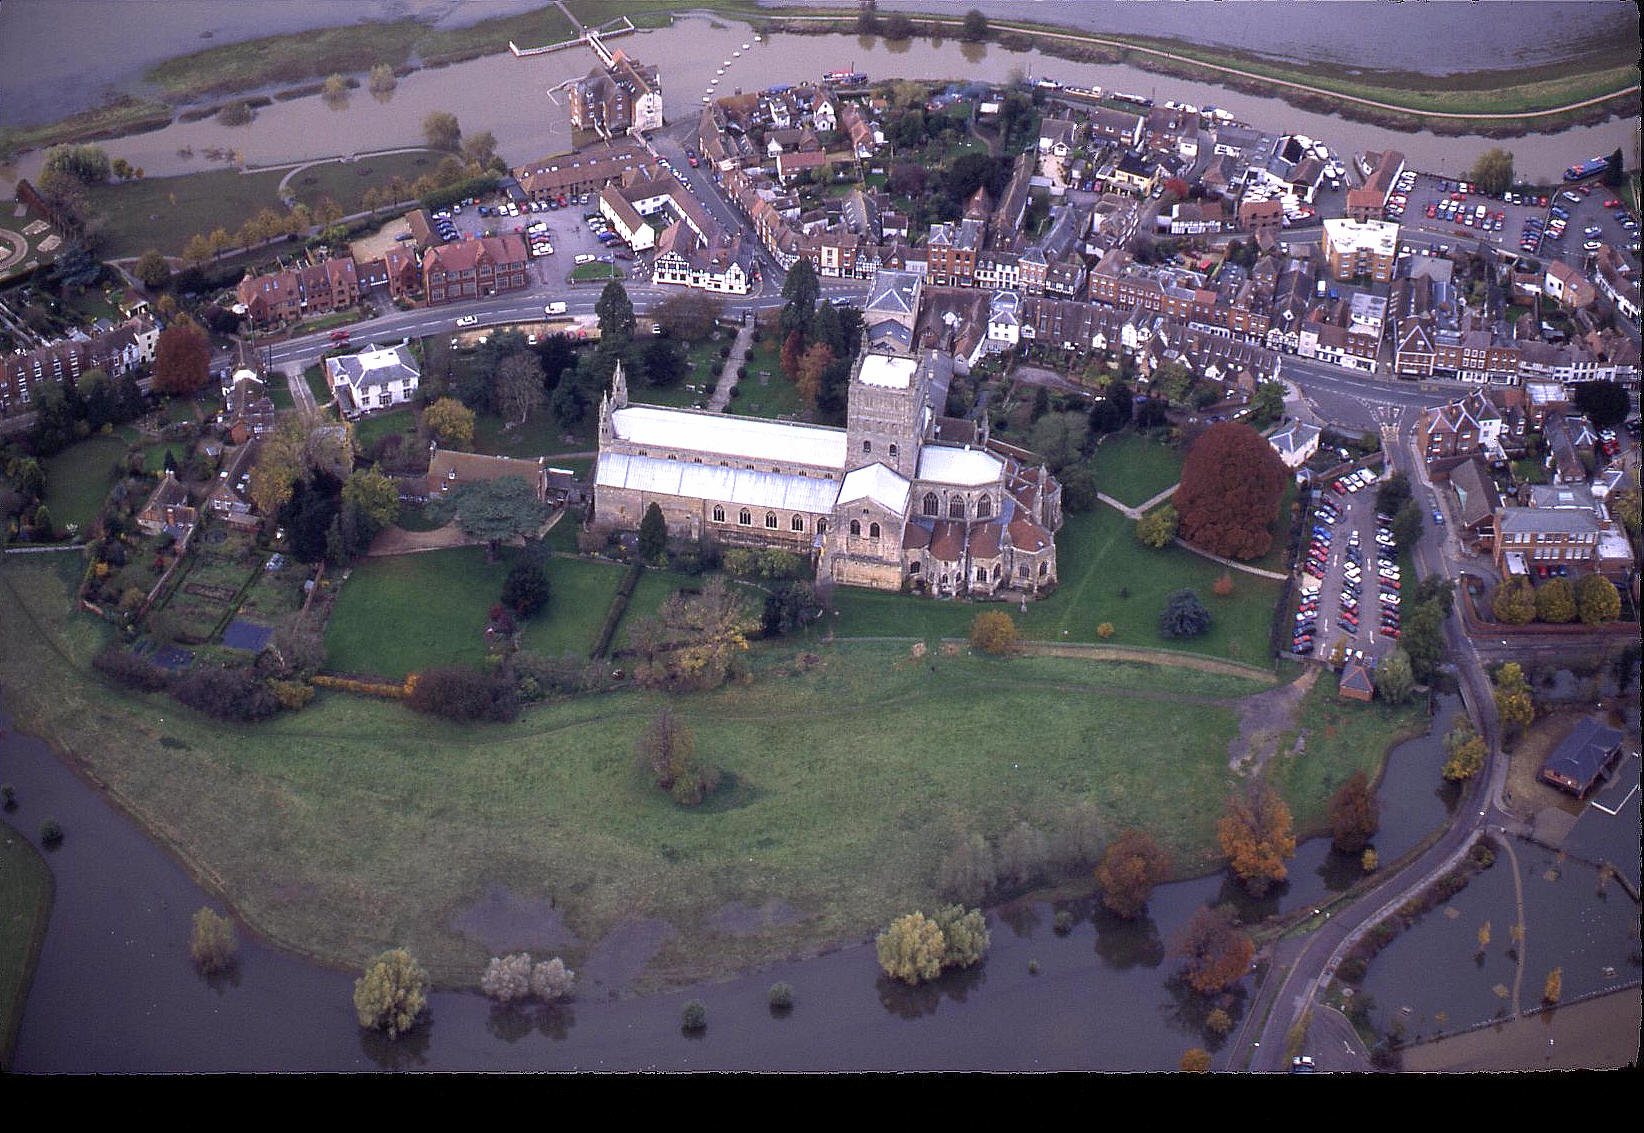 Tewkesbury Abbey, Gloucestershire, during the floods in October 1998. See note 6